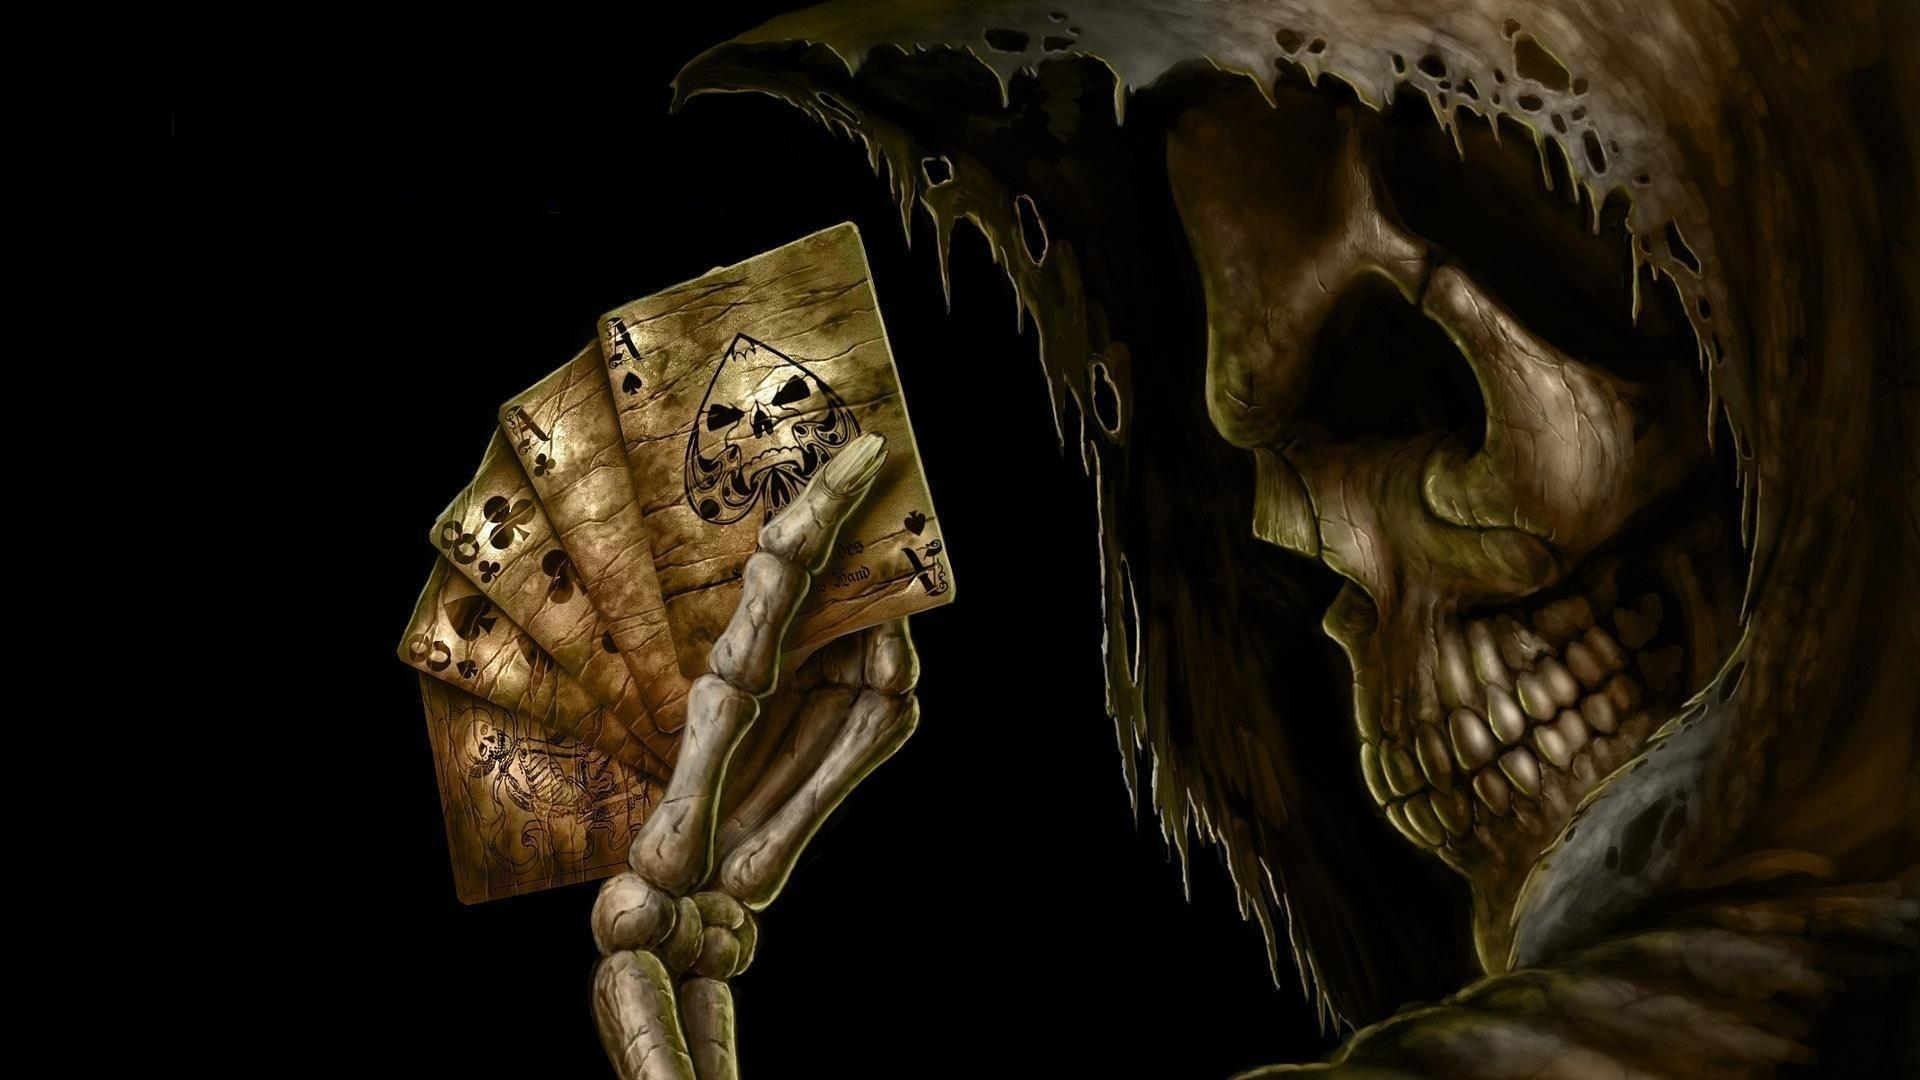 Skull HD Wallpaper Download